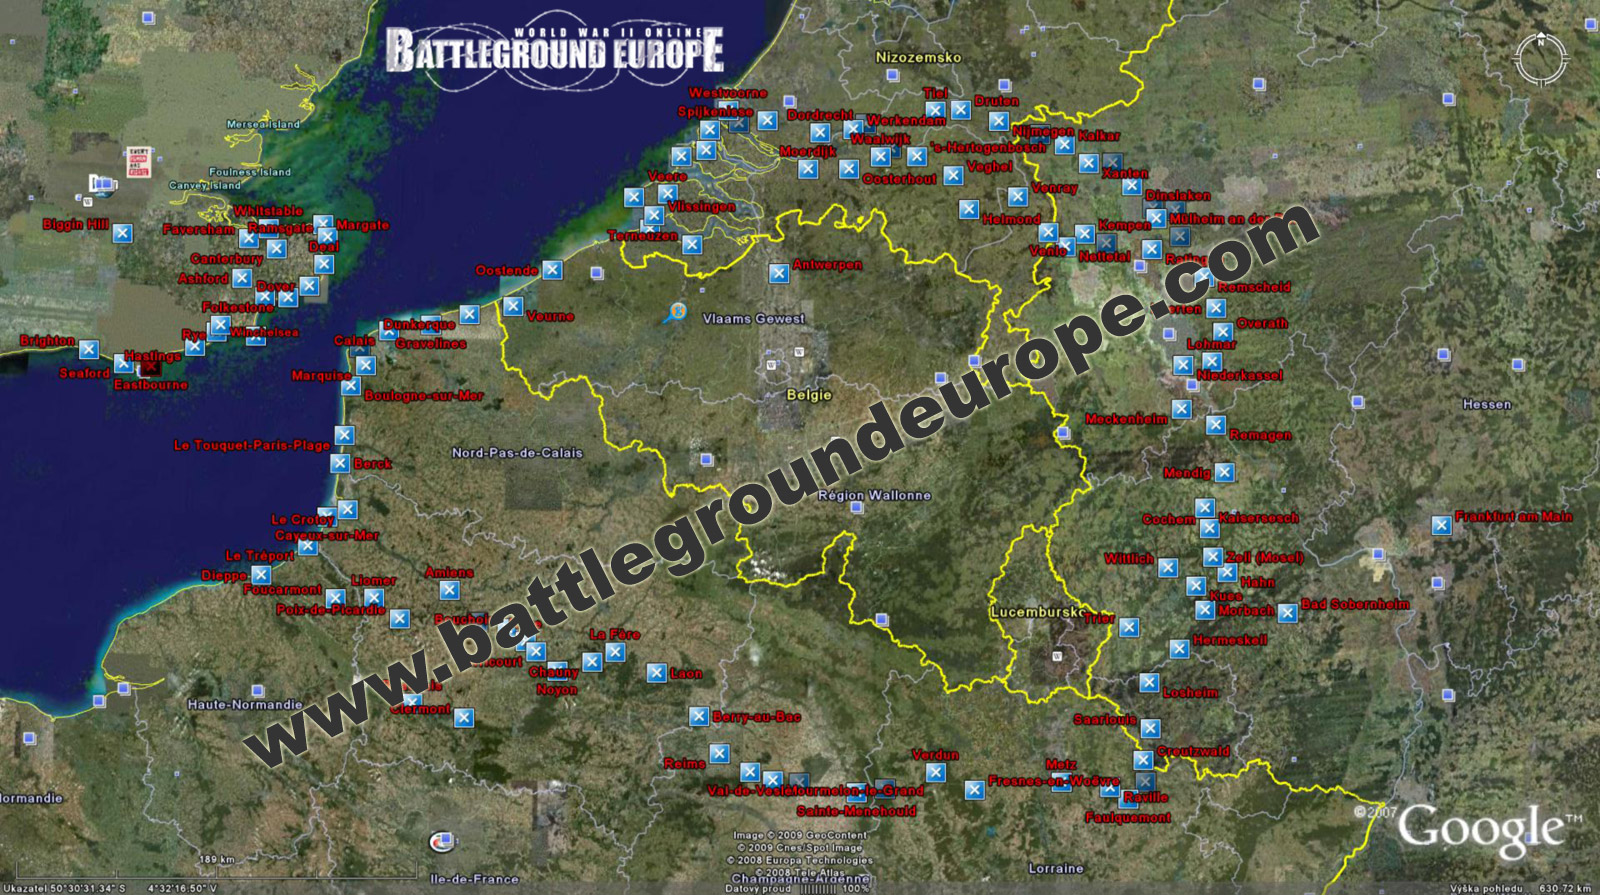 World war ii online battleground europe prosted world war ii online battleground europe google mapg gumiabroncs Choice Image